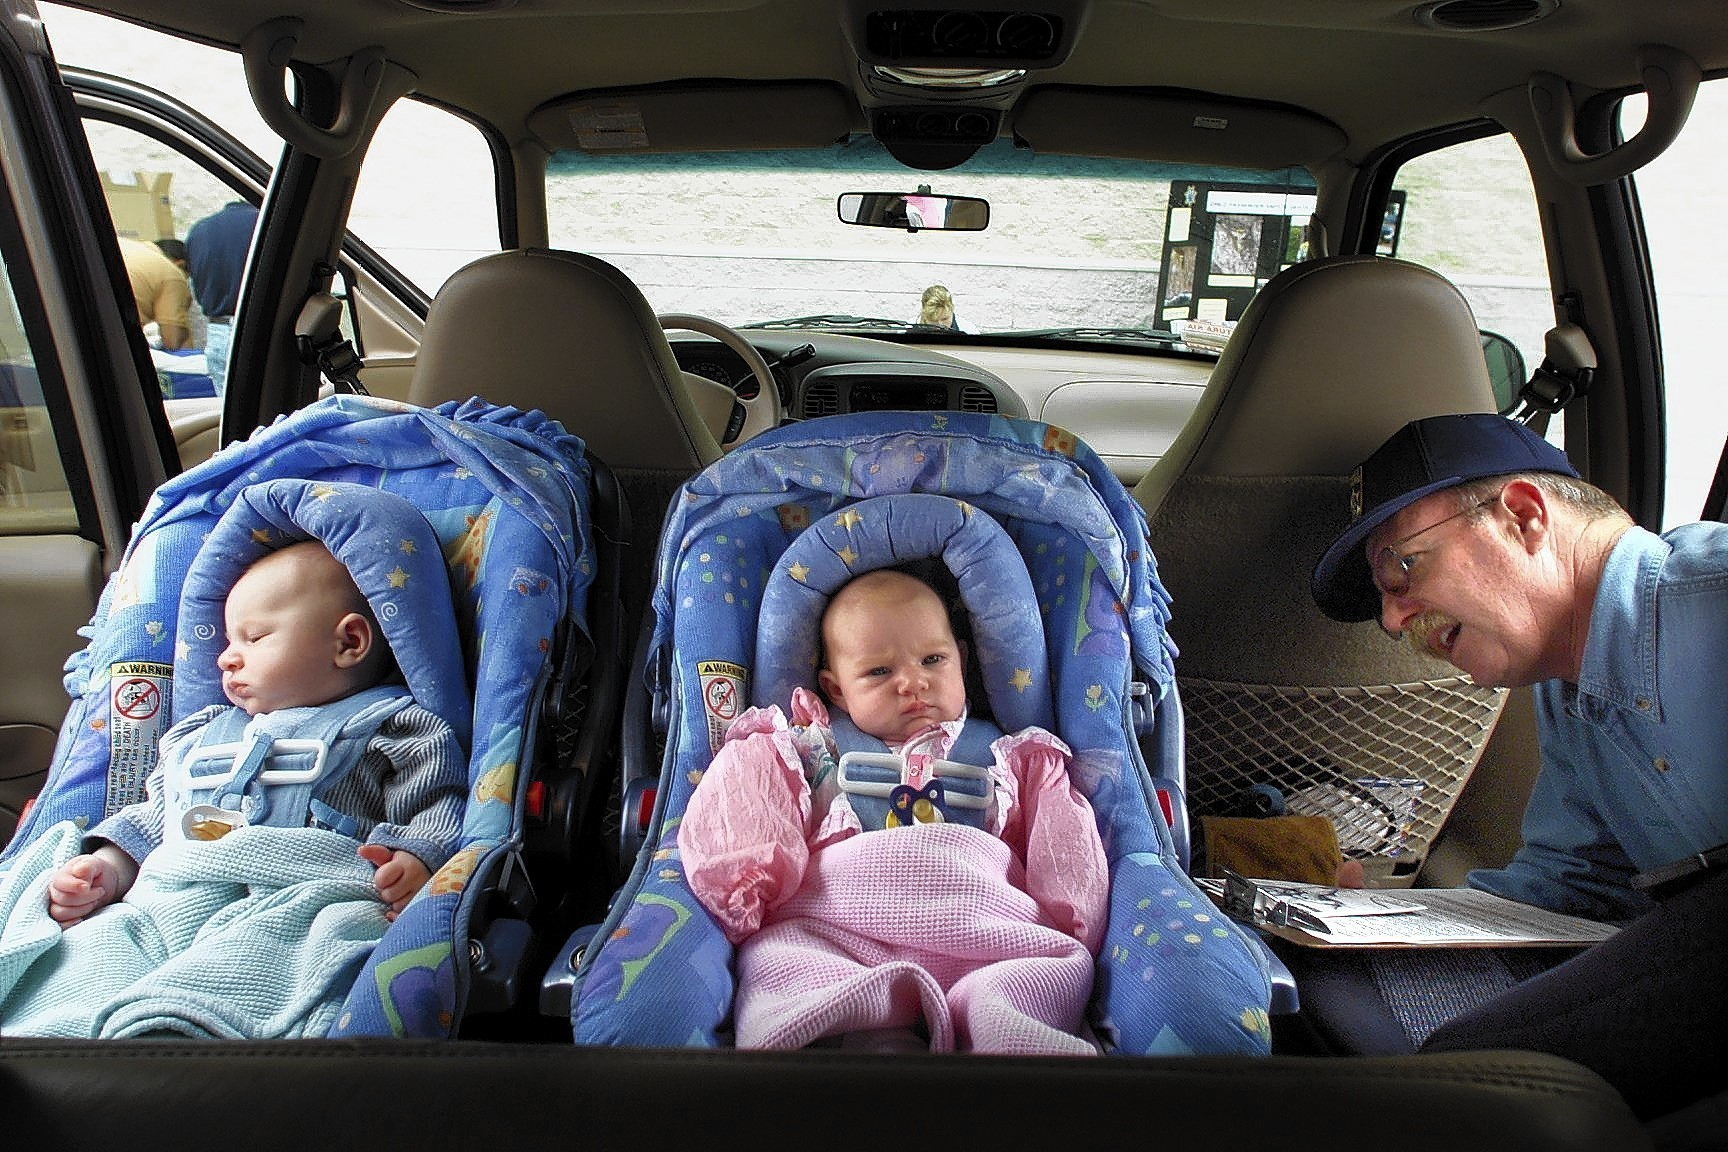 New Safety Rules Proposed For Child Car Seats